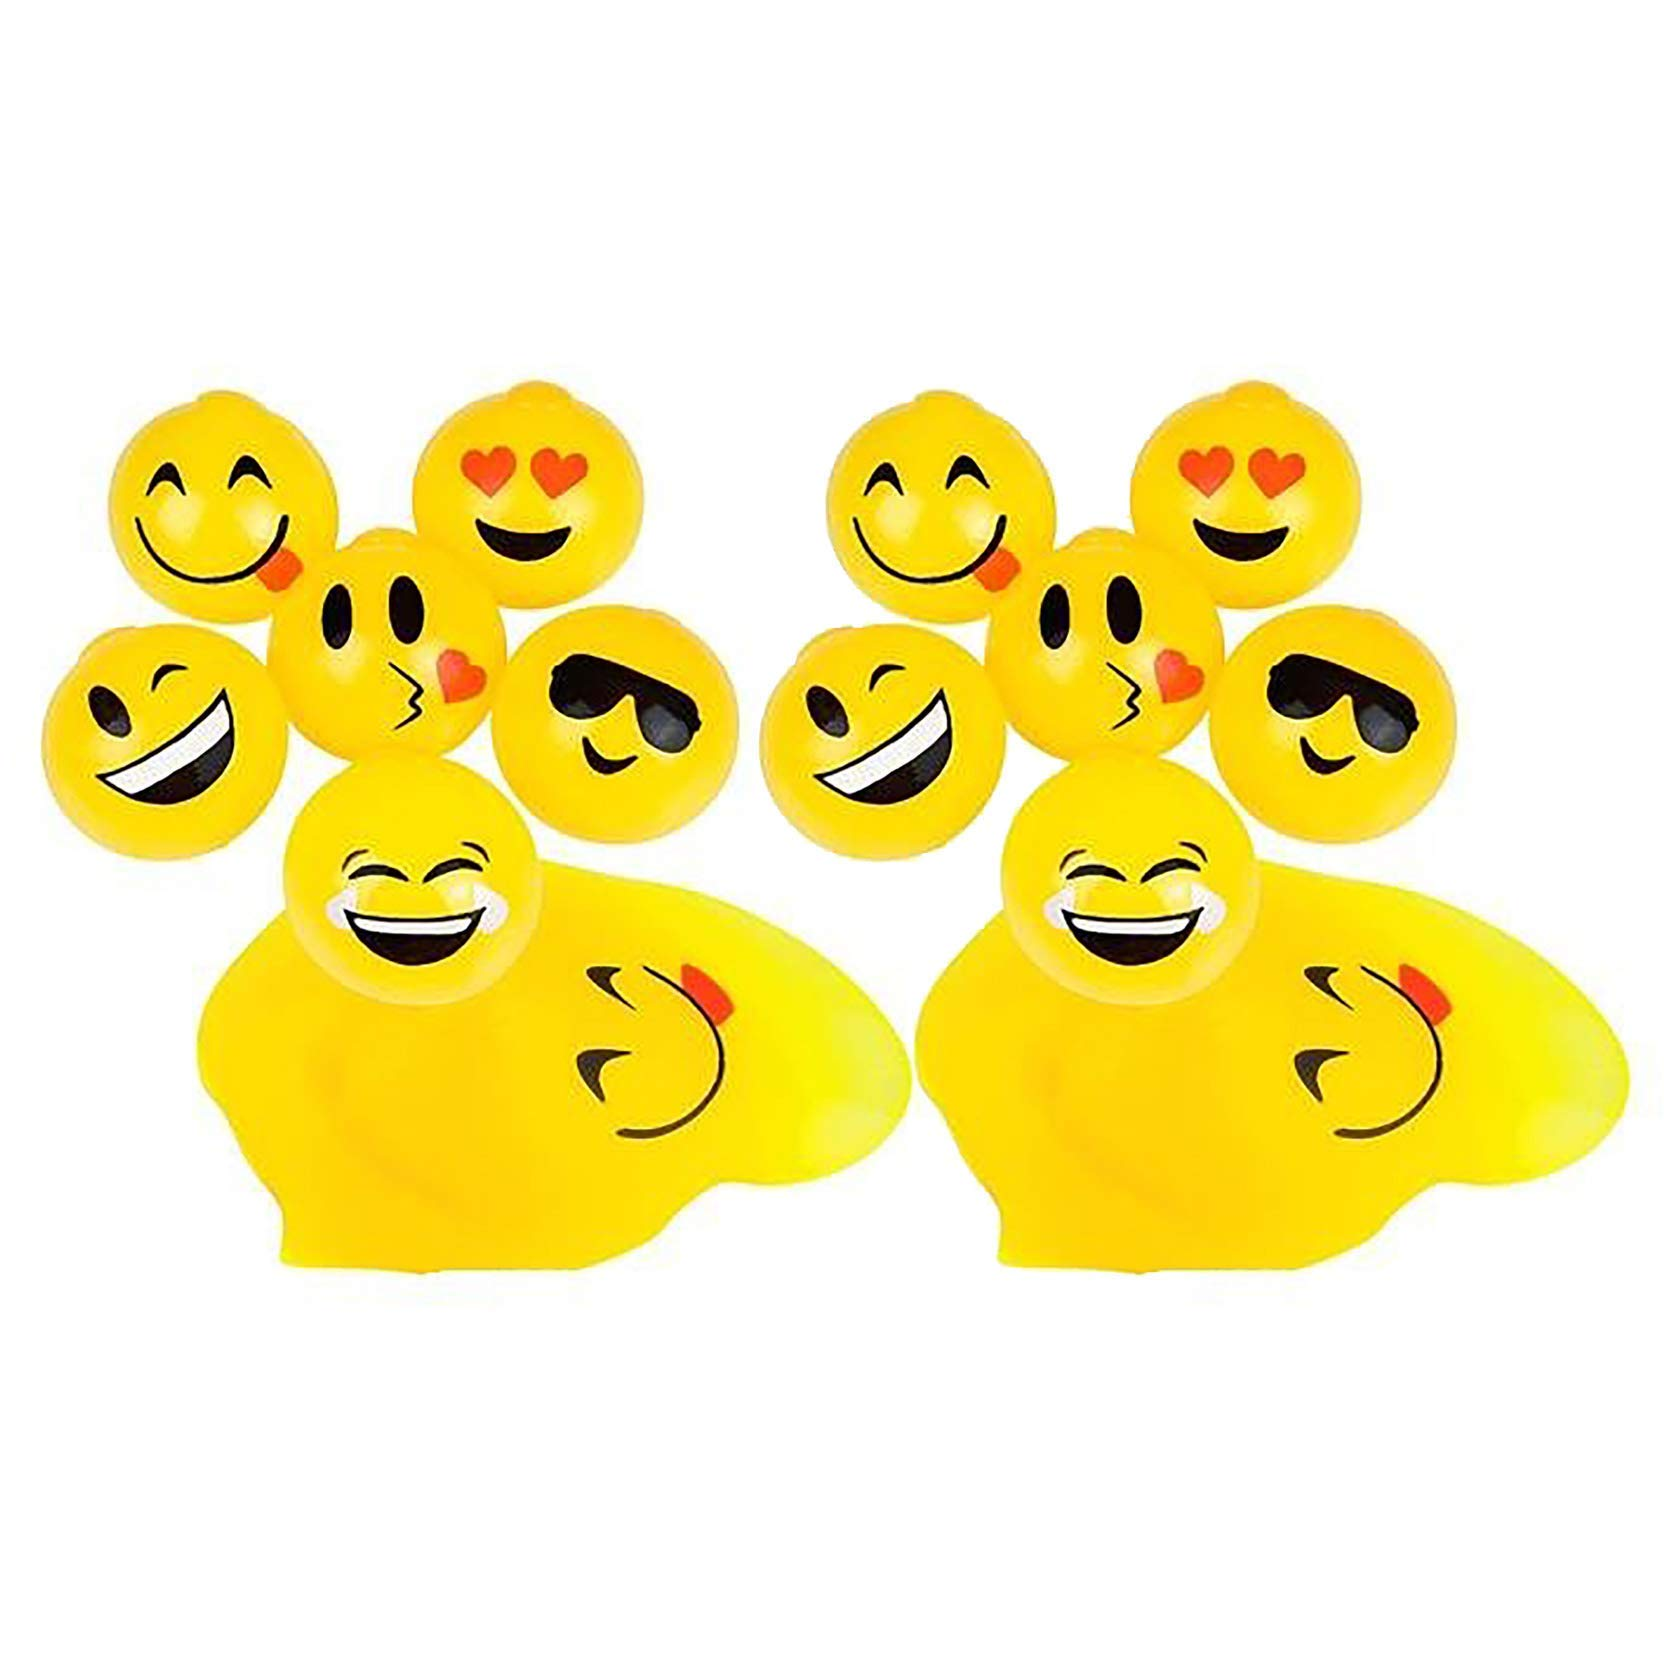 2.5'' Sticky Splat Emoticon Emoji Ball 2 Dozen 24 Pcs Xmas Stocking Stuffers By B.N.D